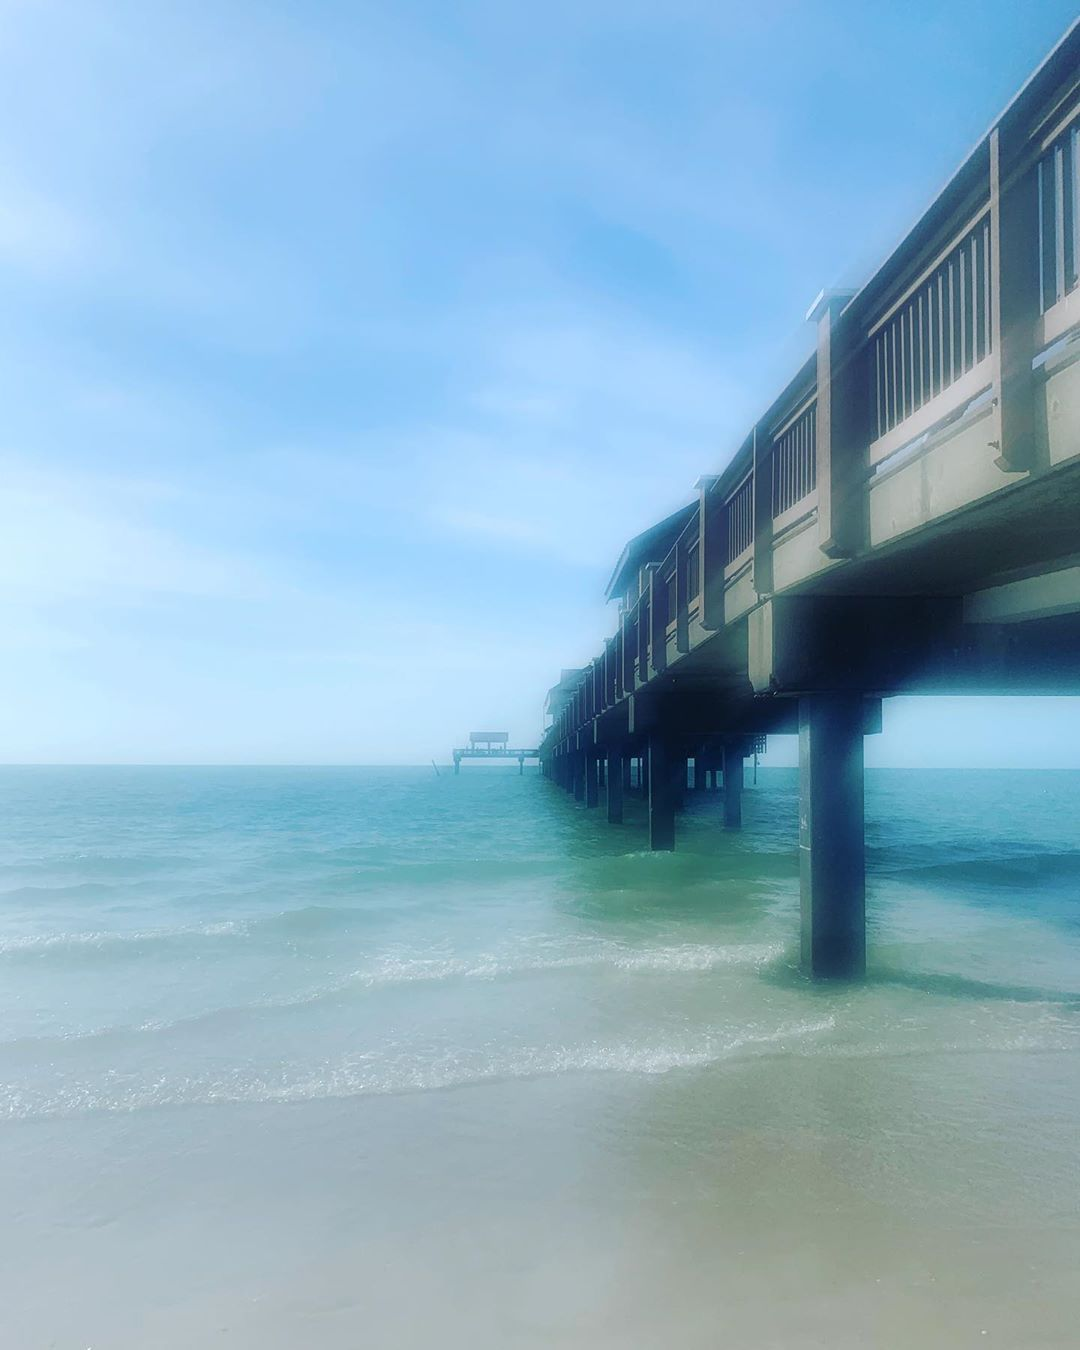 Take me back! #clearwaterbeach #clearwater #florida #vacation #pier #ocean #water #gulfofmexico #beautiful #sunny #nature